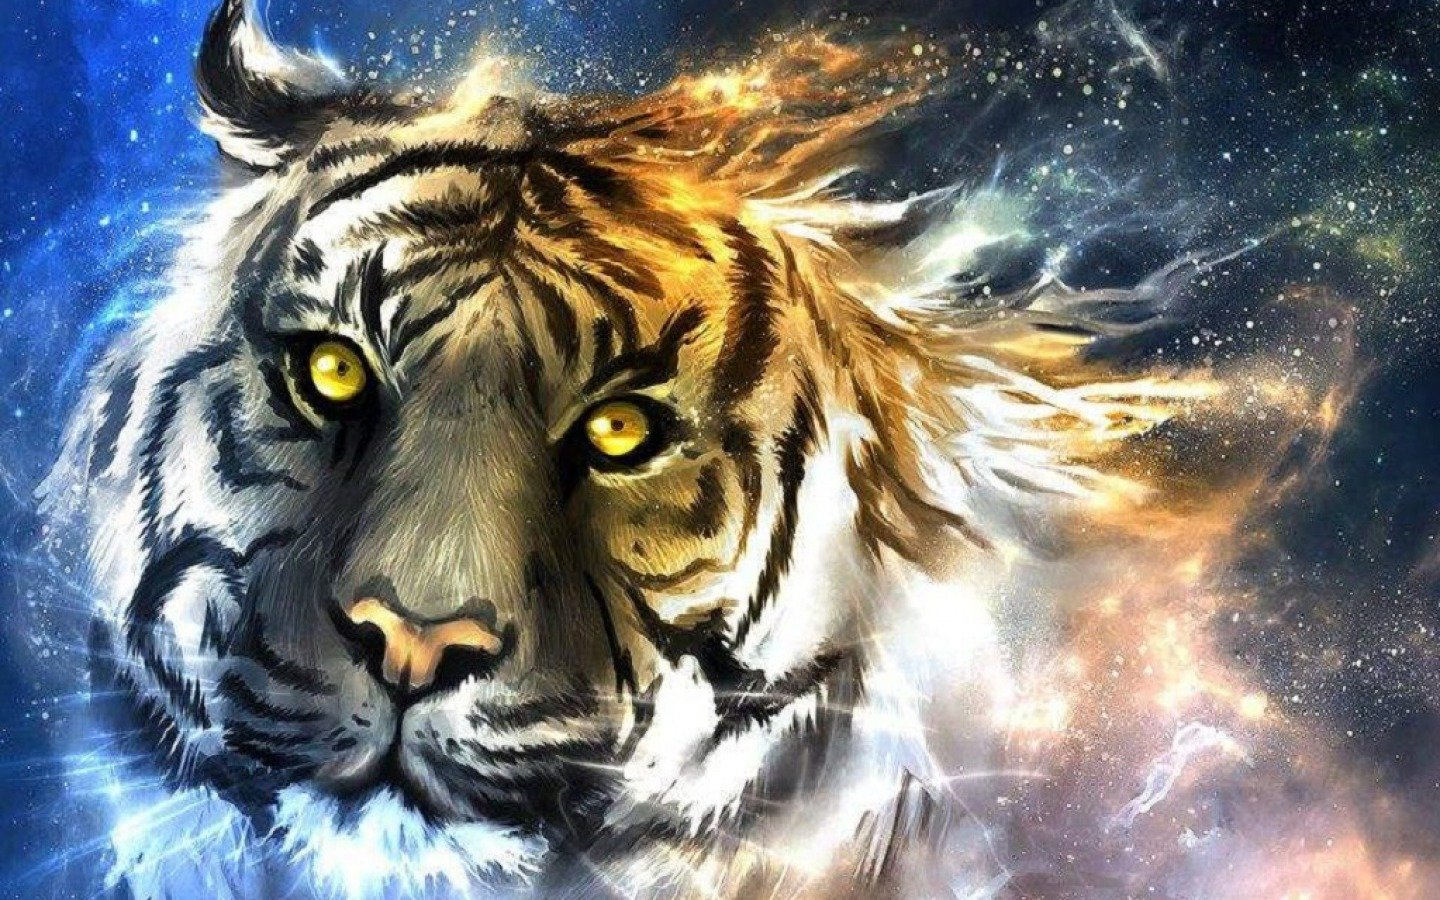 Download hd 1440x900 Tiger desktop wallpaper ID:115645 for free